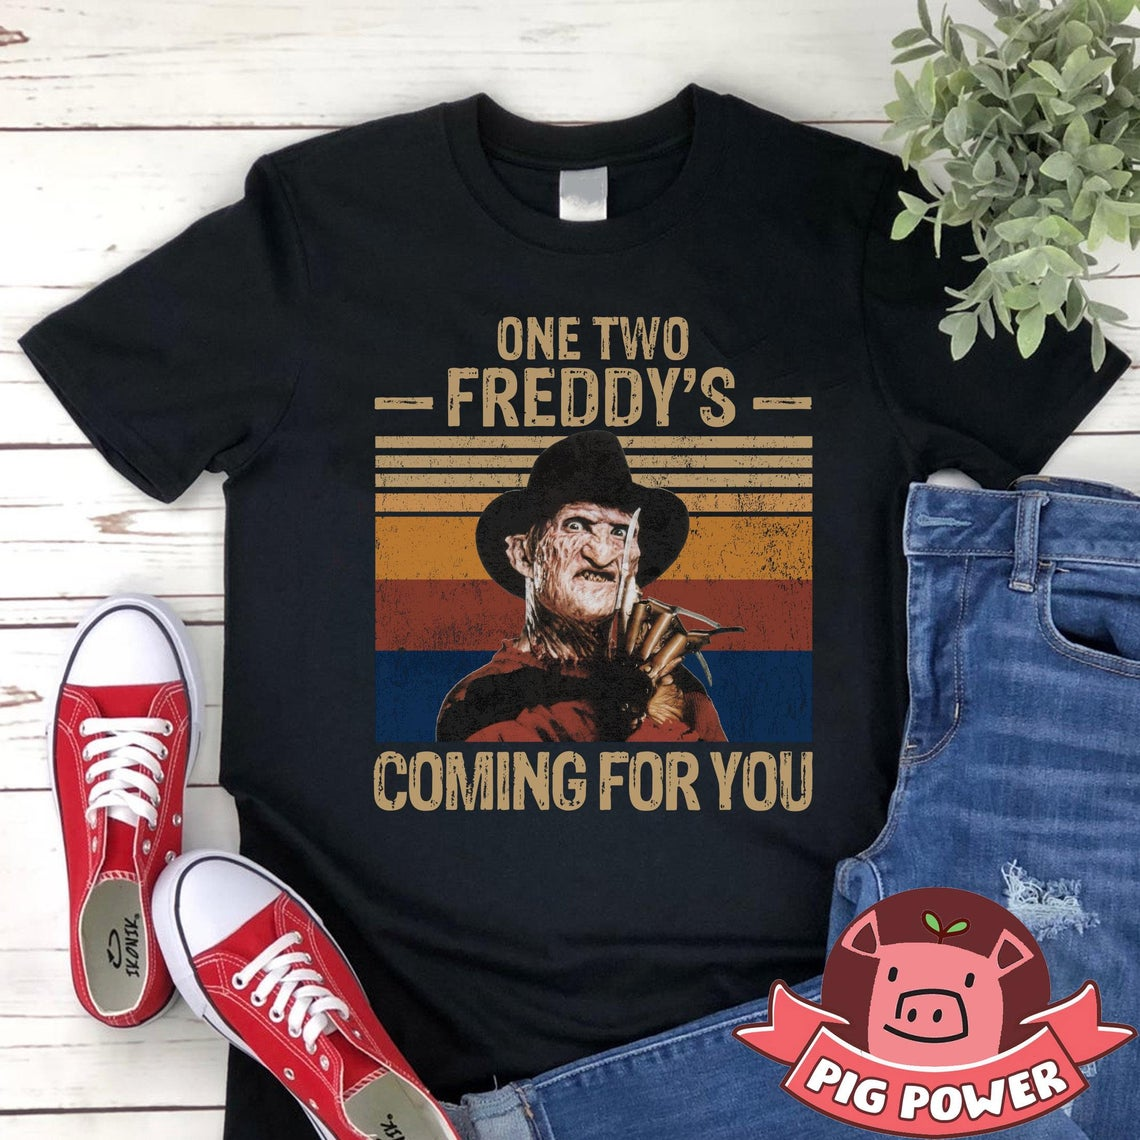 One Two Freddys Coming For You Shirt Freddy Krueger T-shirt